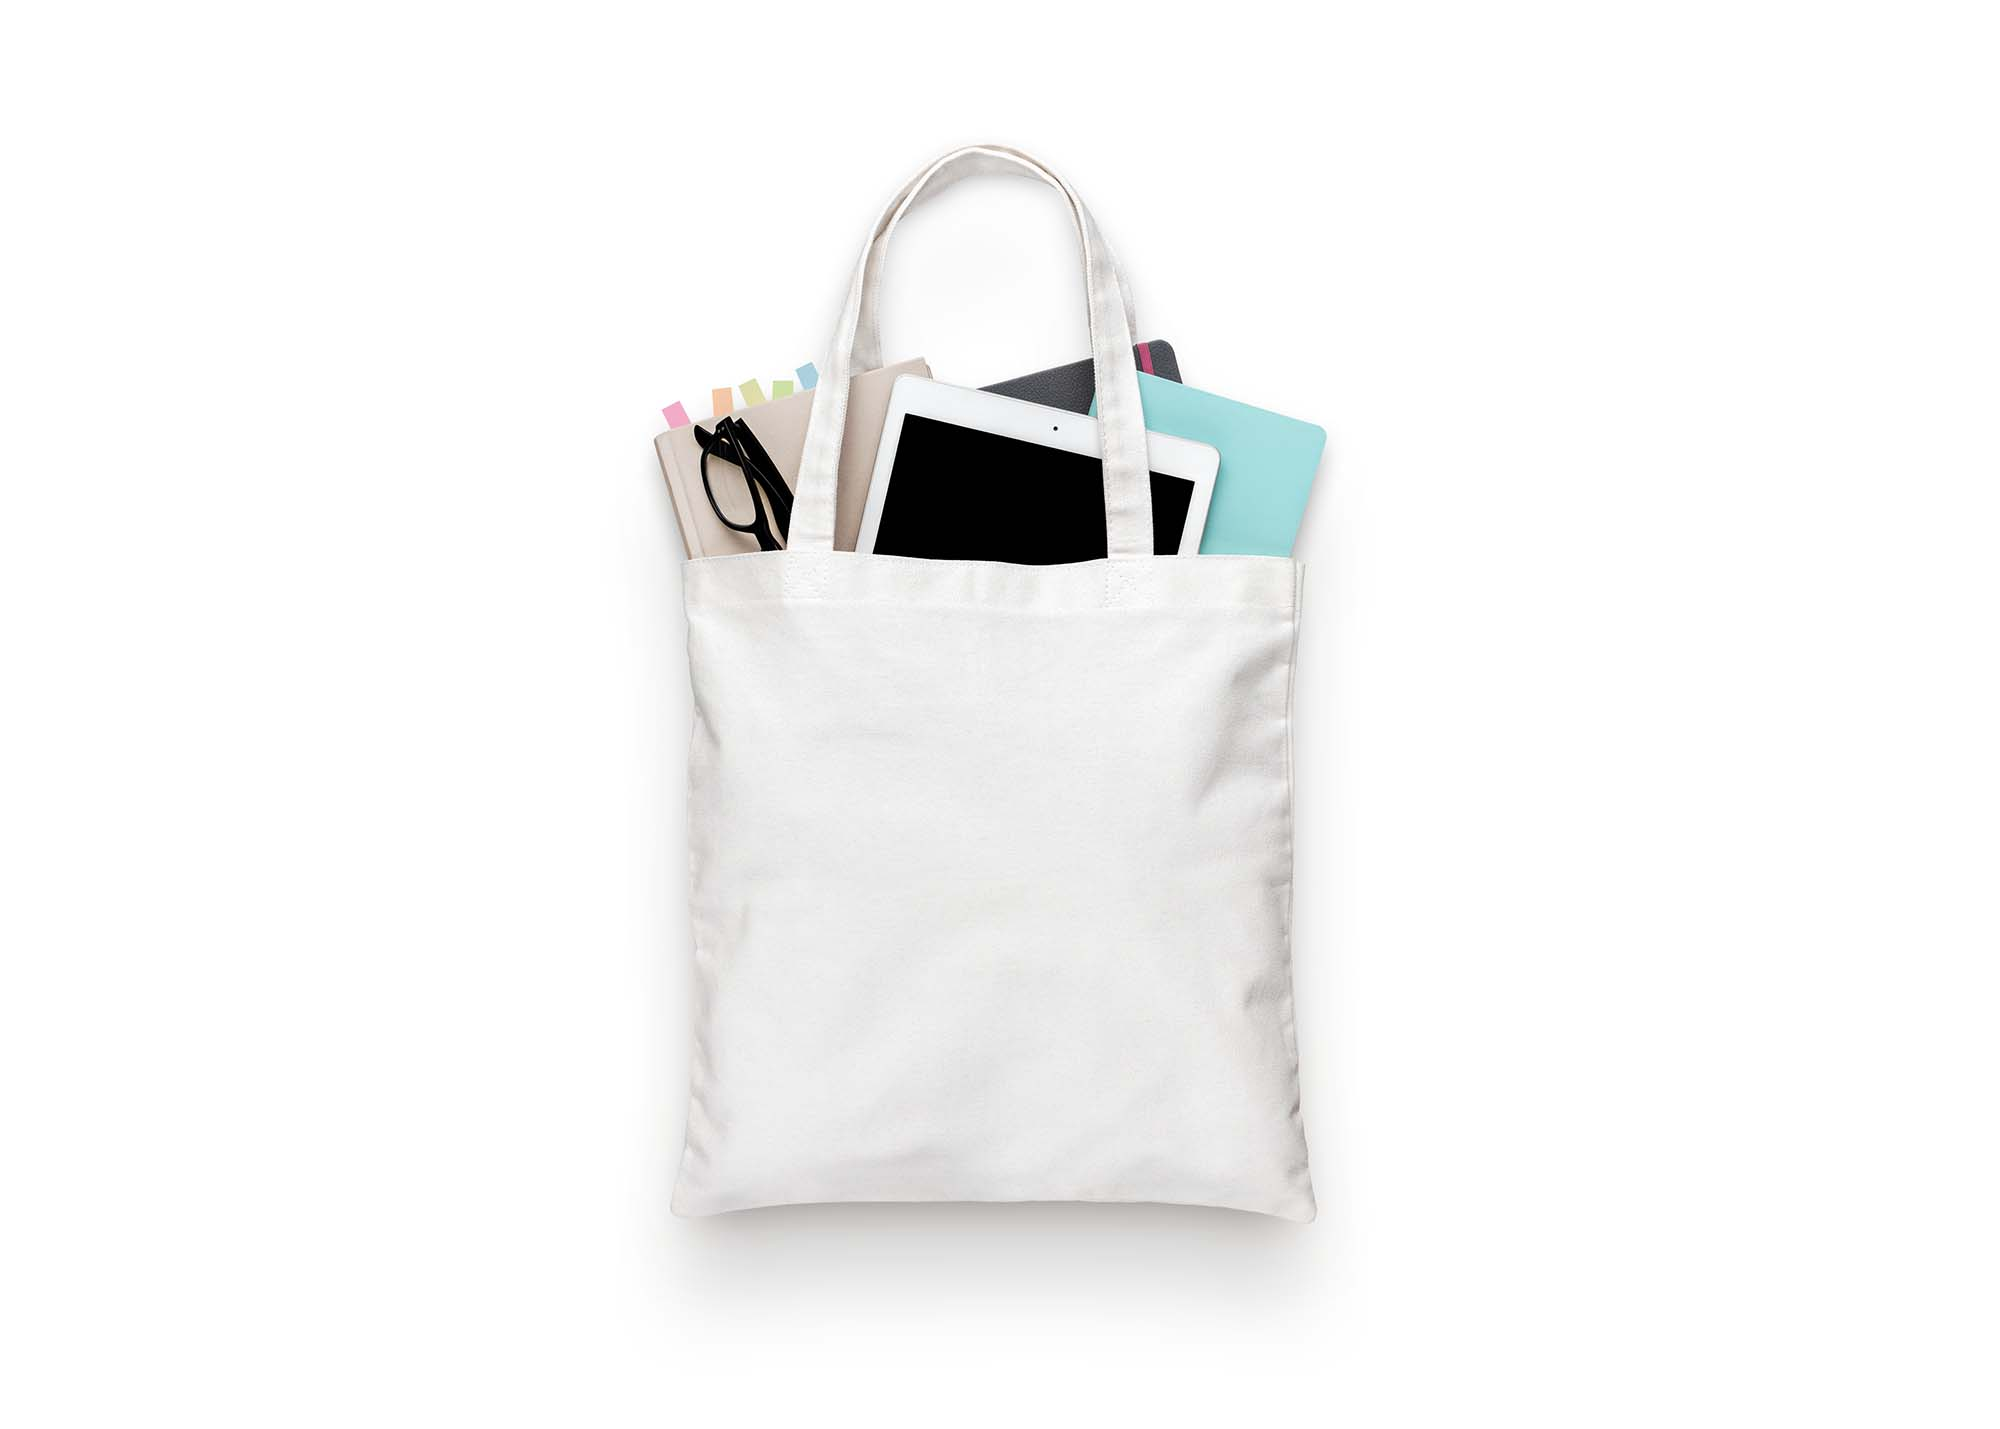 Tote Cloth Bag Mockup 2